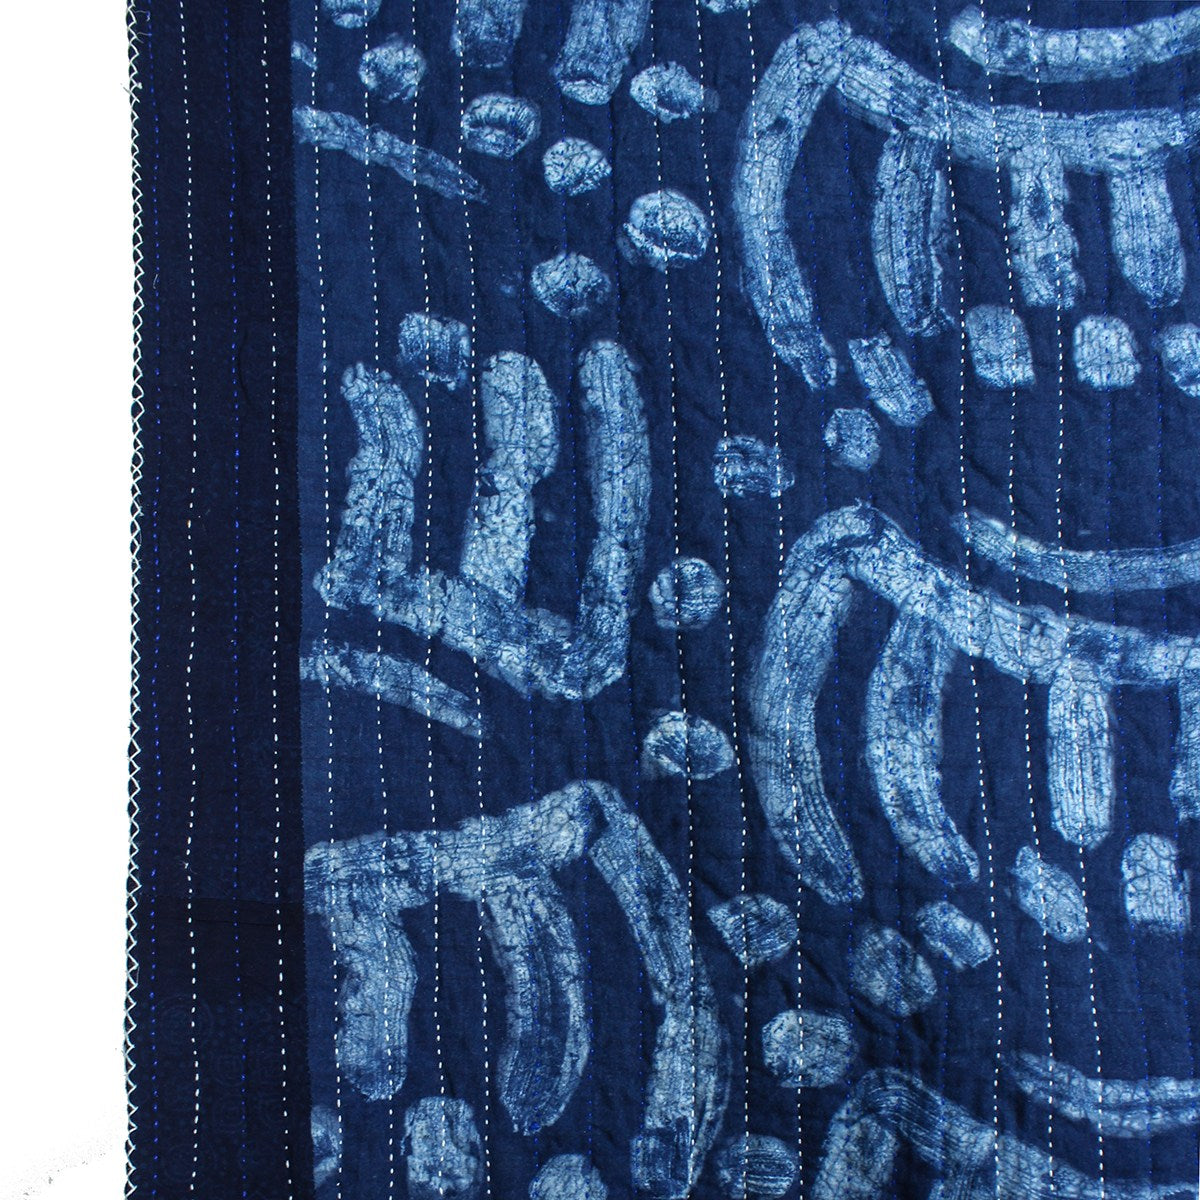 Detail of indigo dyed woven quilt